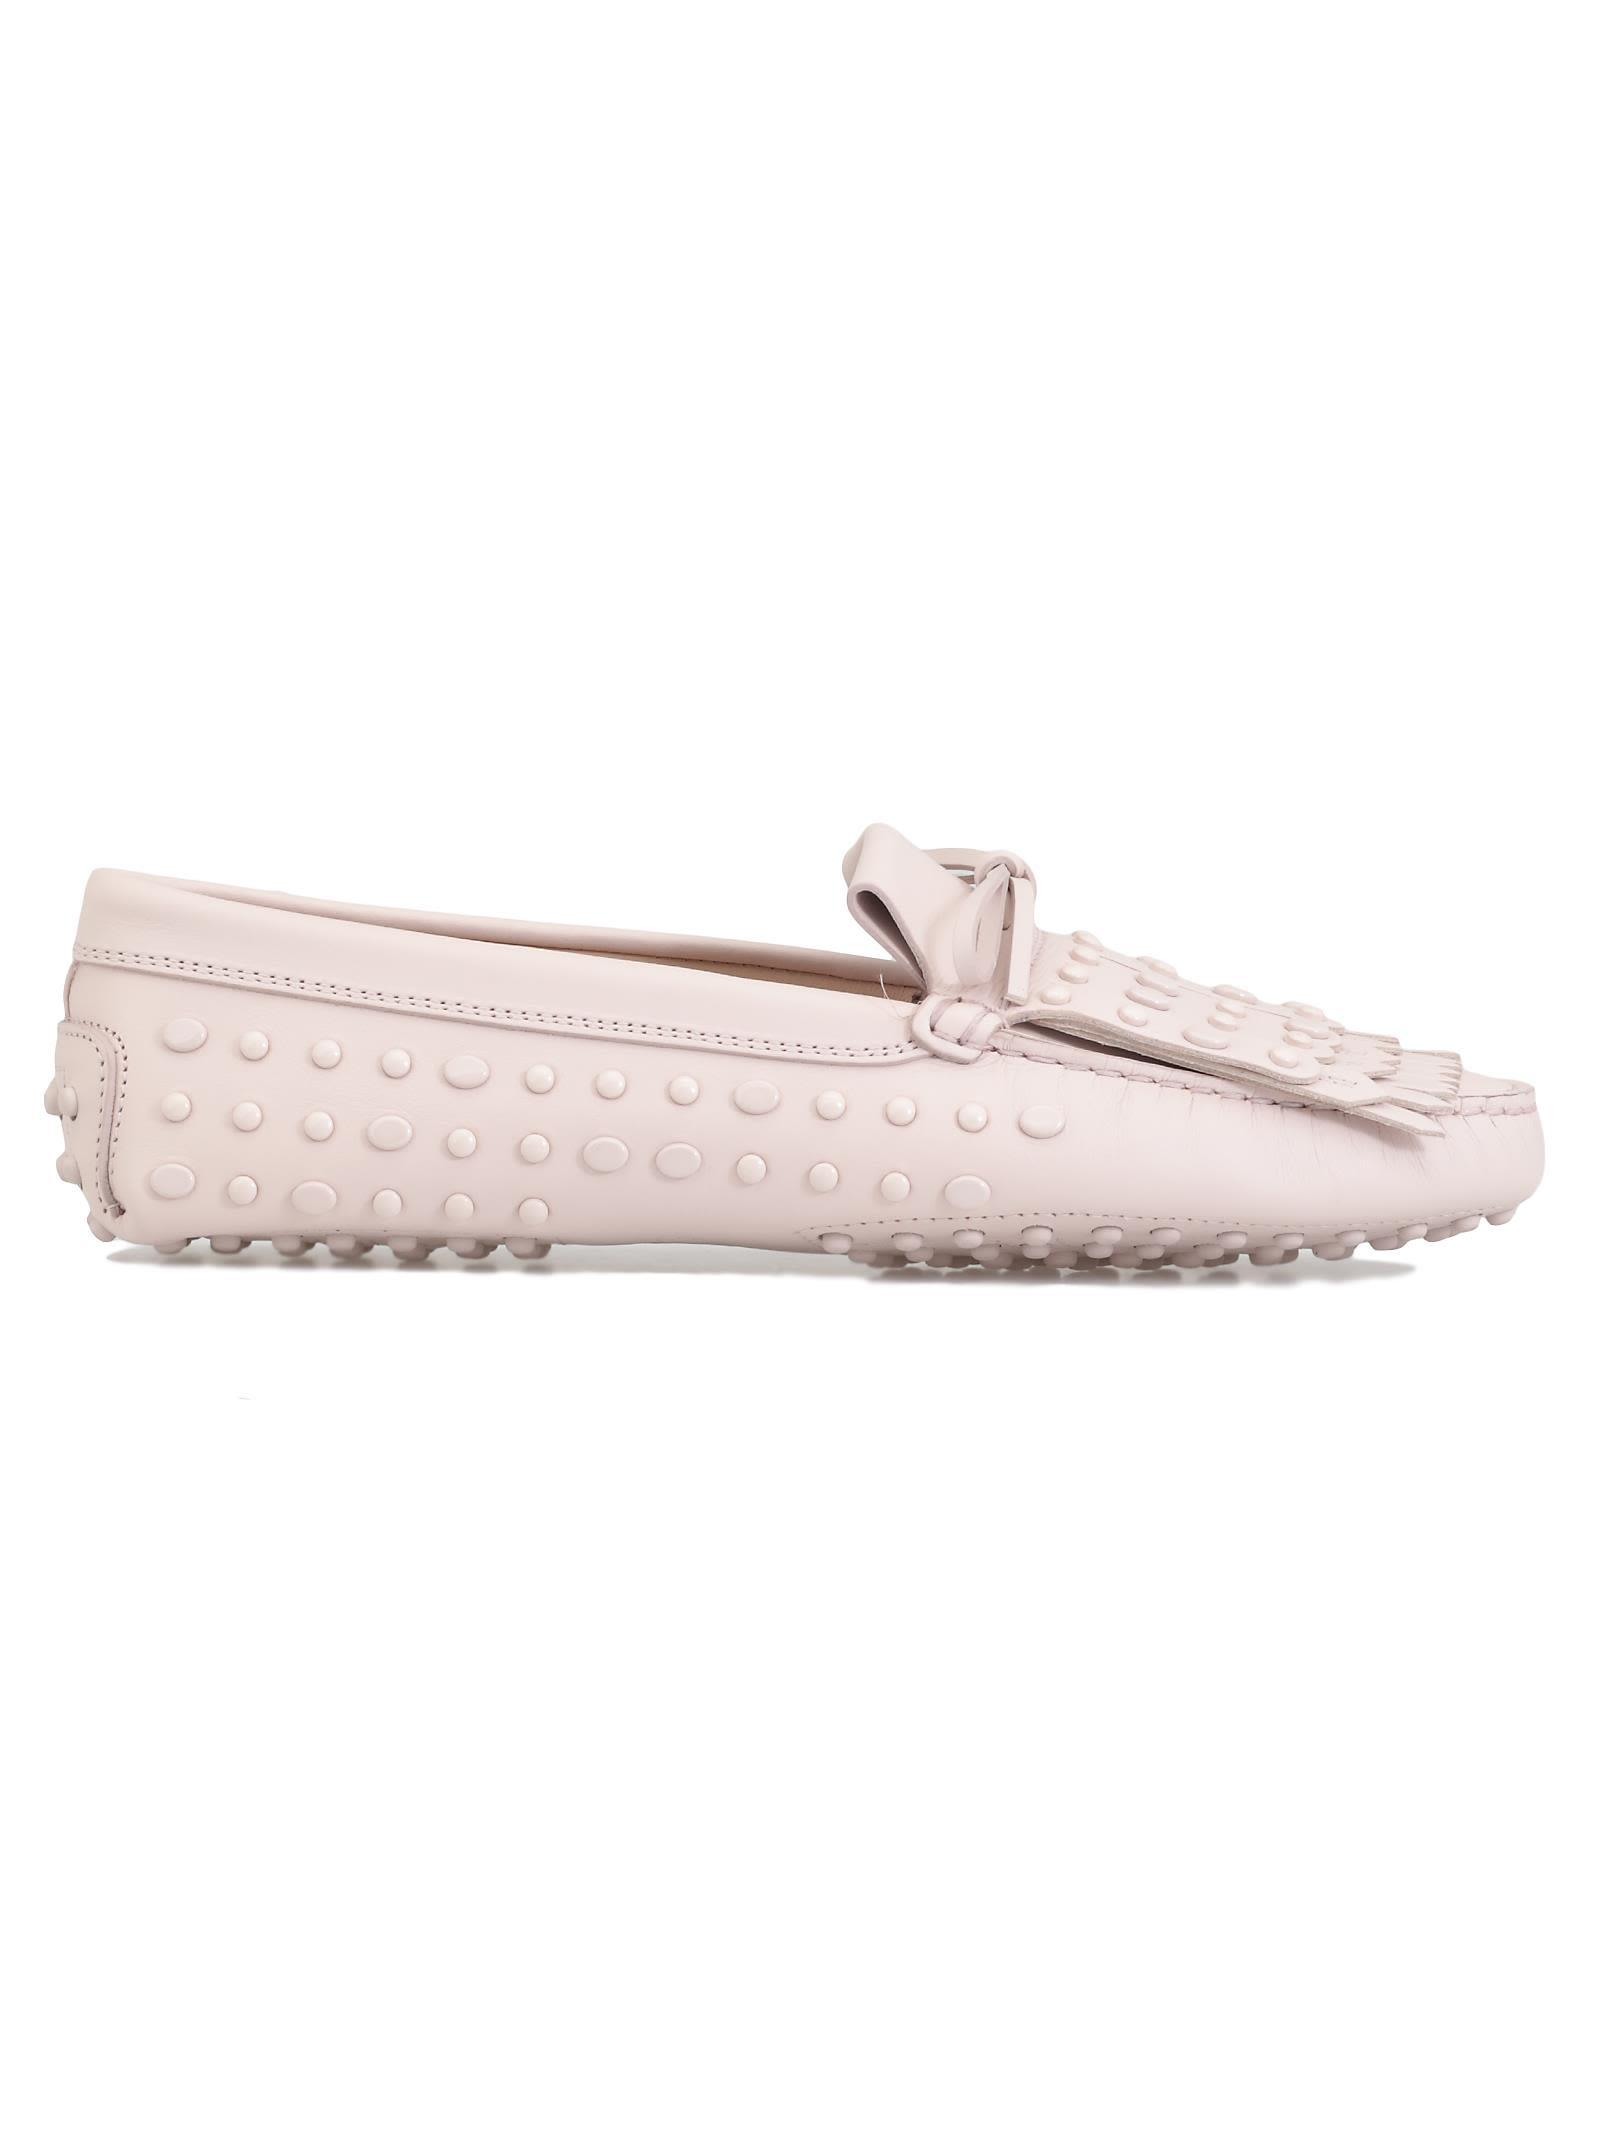 4134406c19a Tod s Leather Loafer In Glove